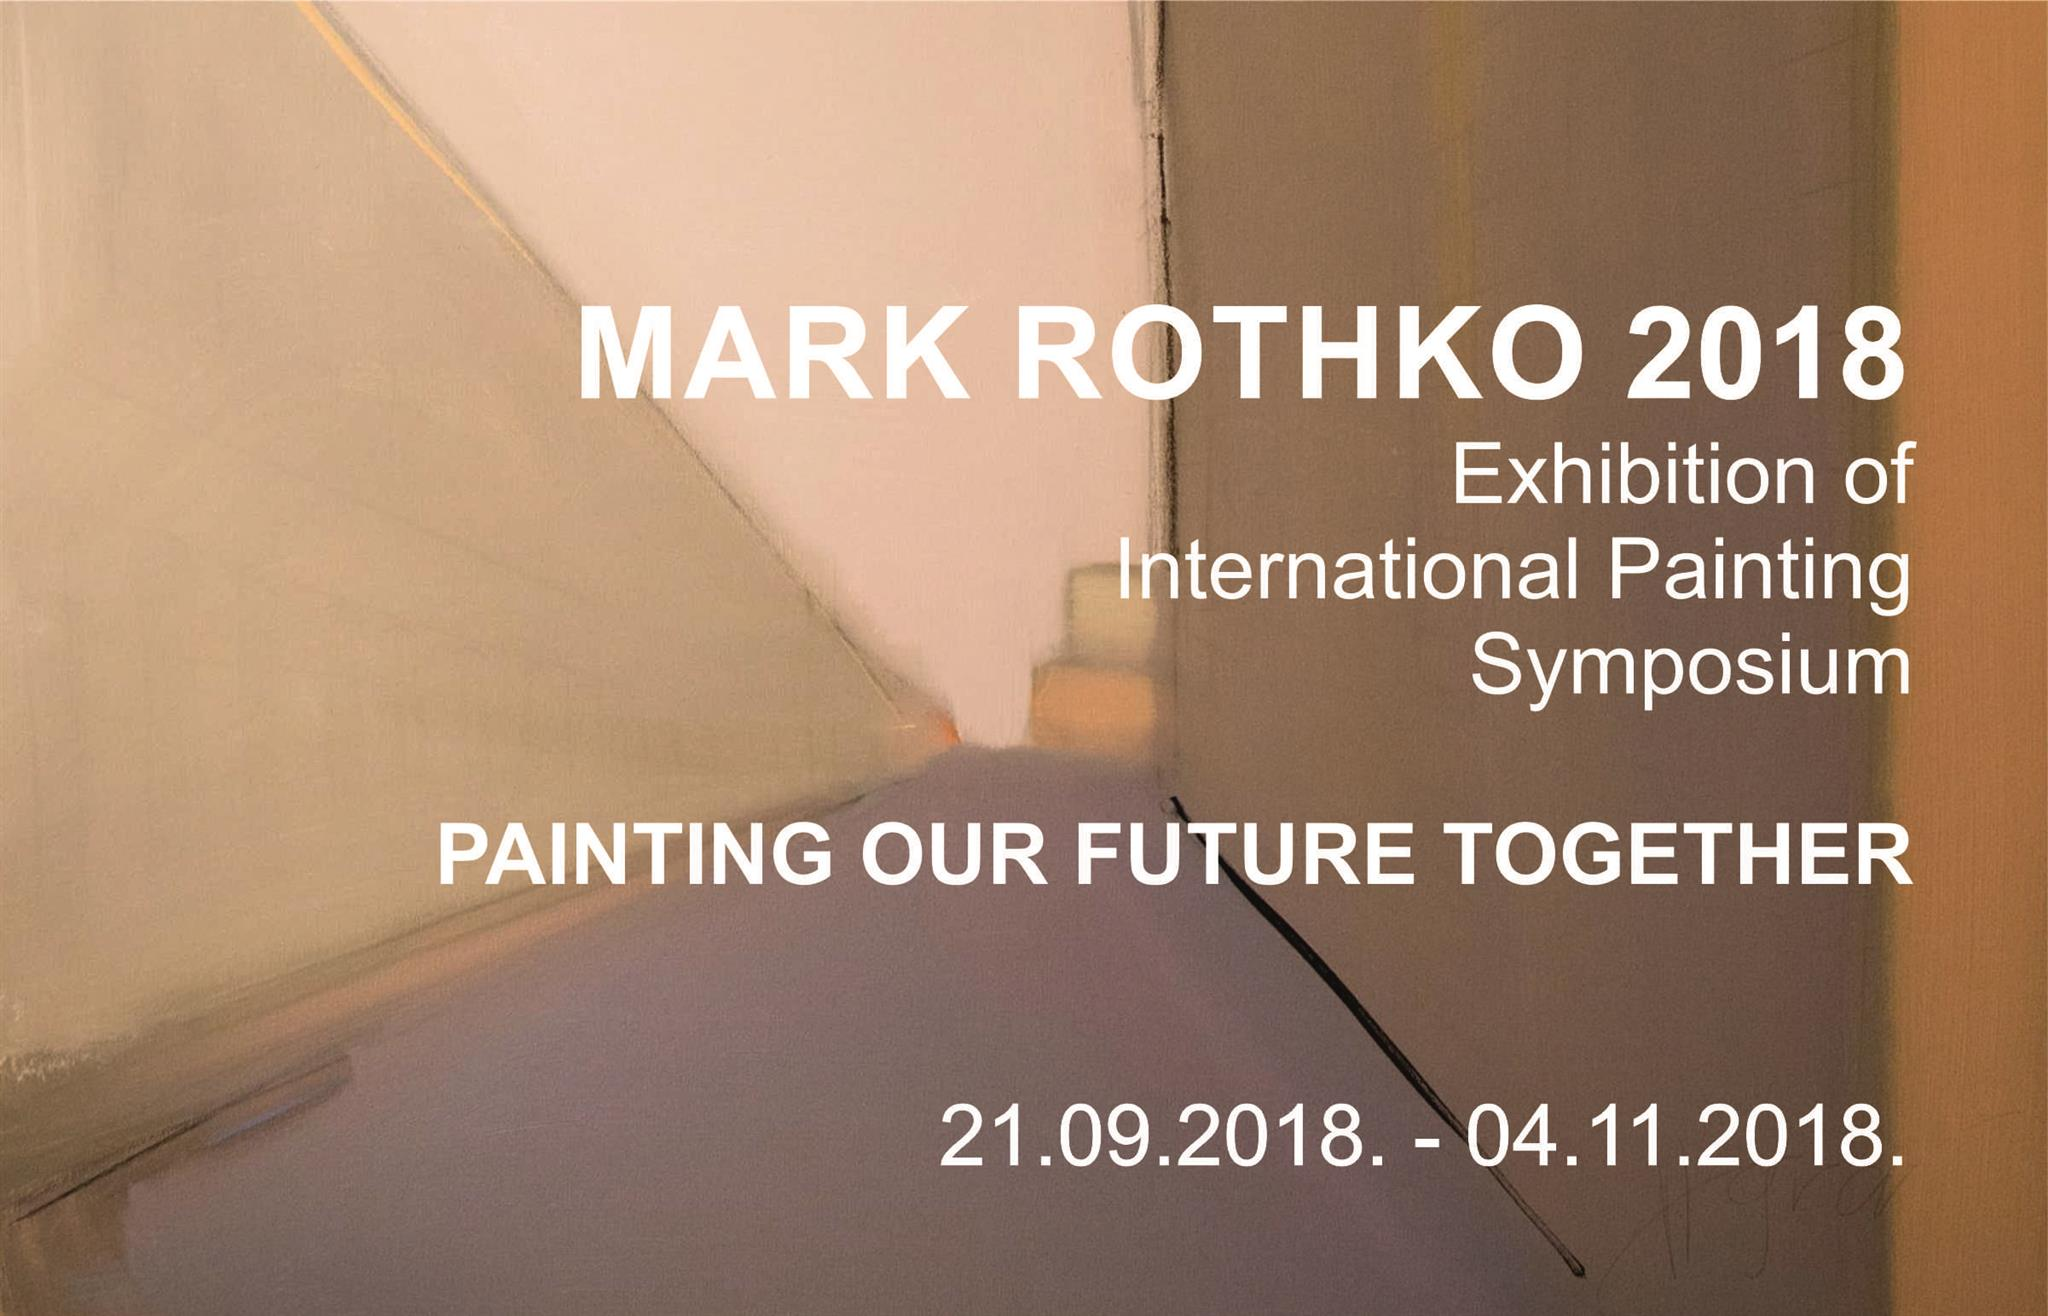 International Painting Symposium  Mark Rothko 2018